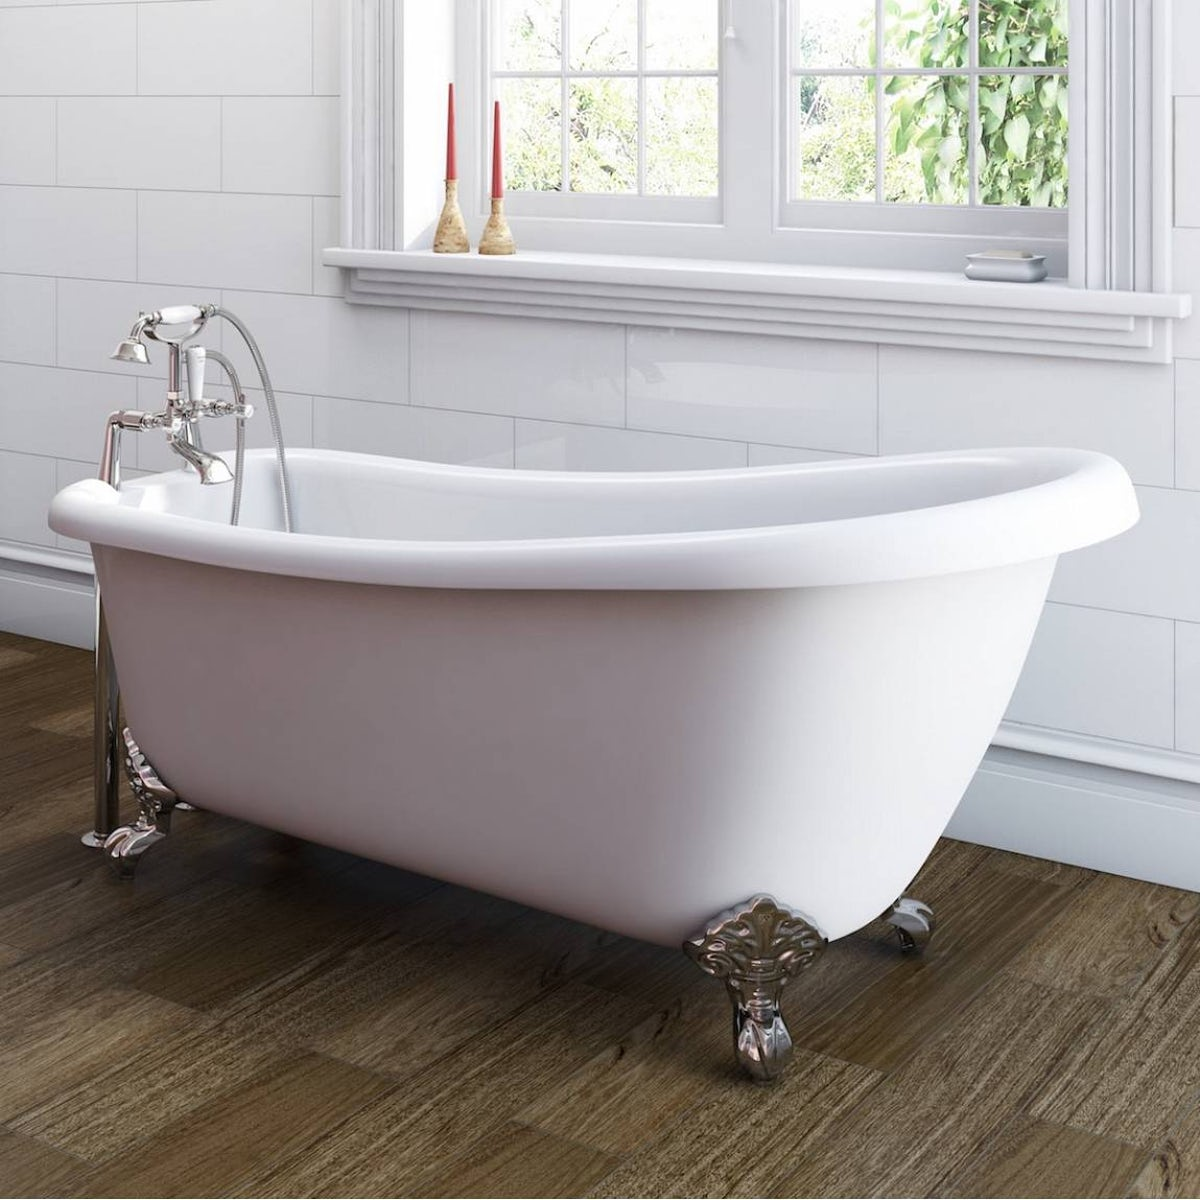 Deco bathroom suite with slipper bath small for Small baths 1200